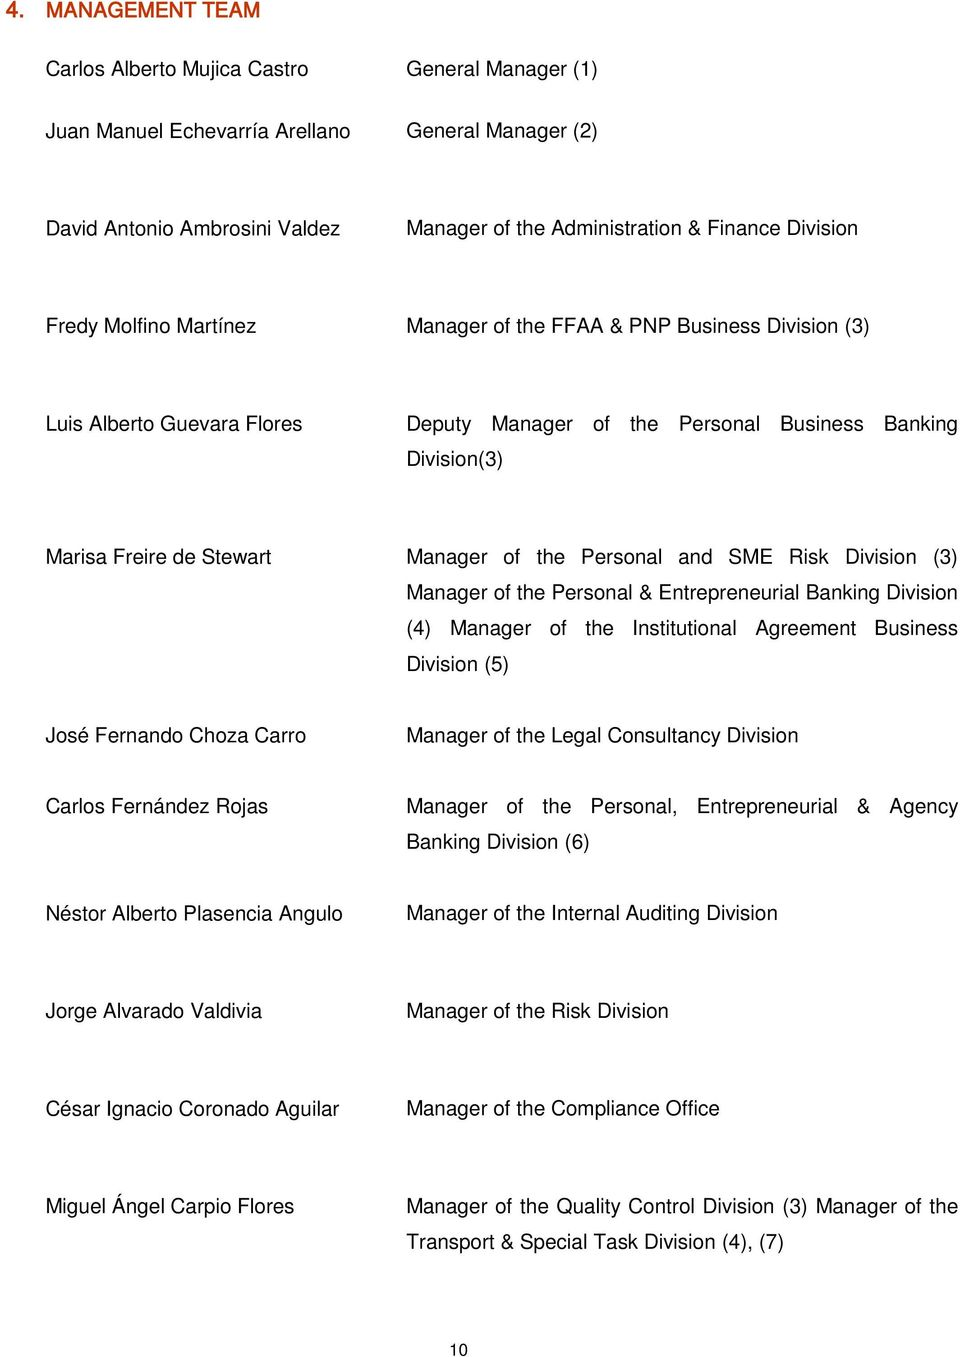 Personal and SME Risk Division (3) Manager of the Personal & Entrepreneurial Banking Division (4) Manager of the Institutional Agreement Business Division (5) José Fernando Choza Carro Manager of the